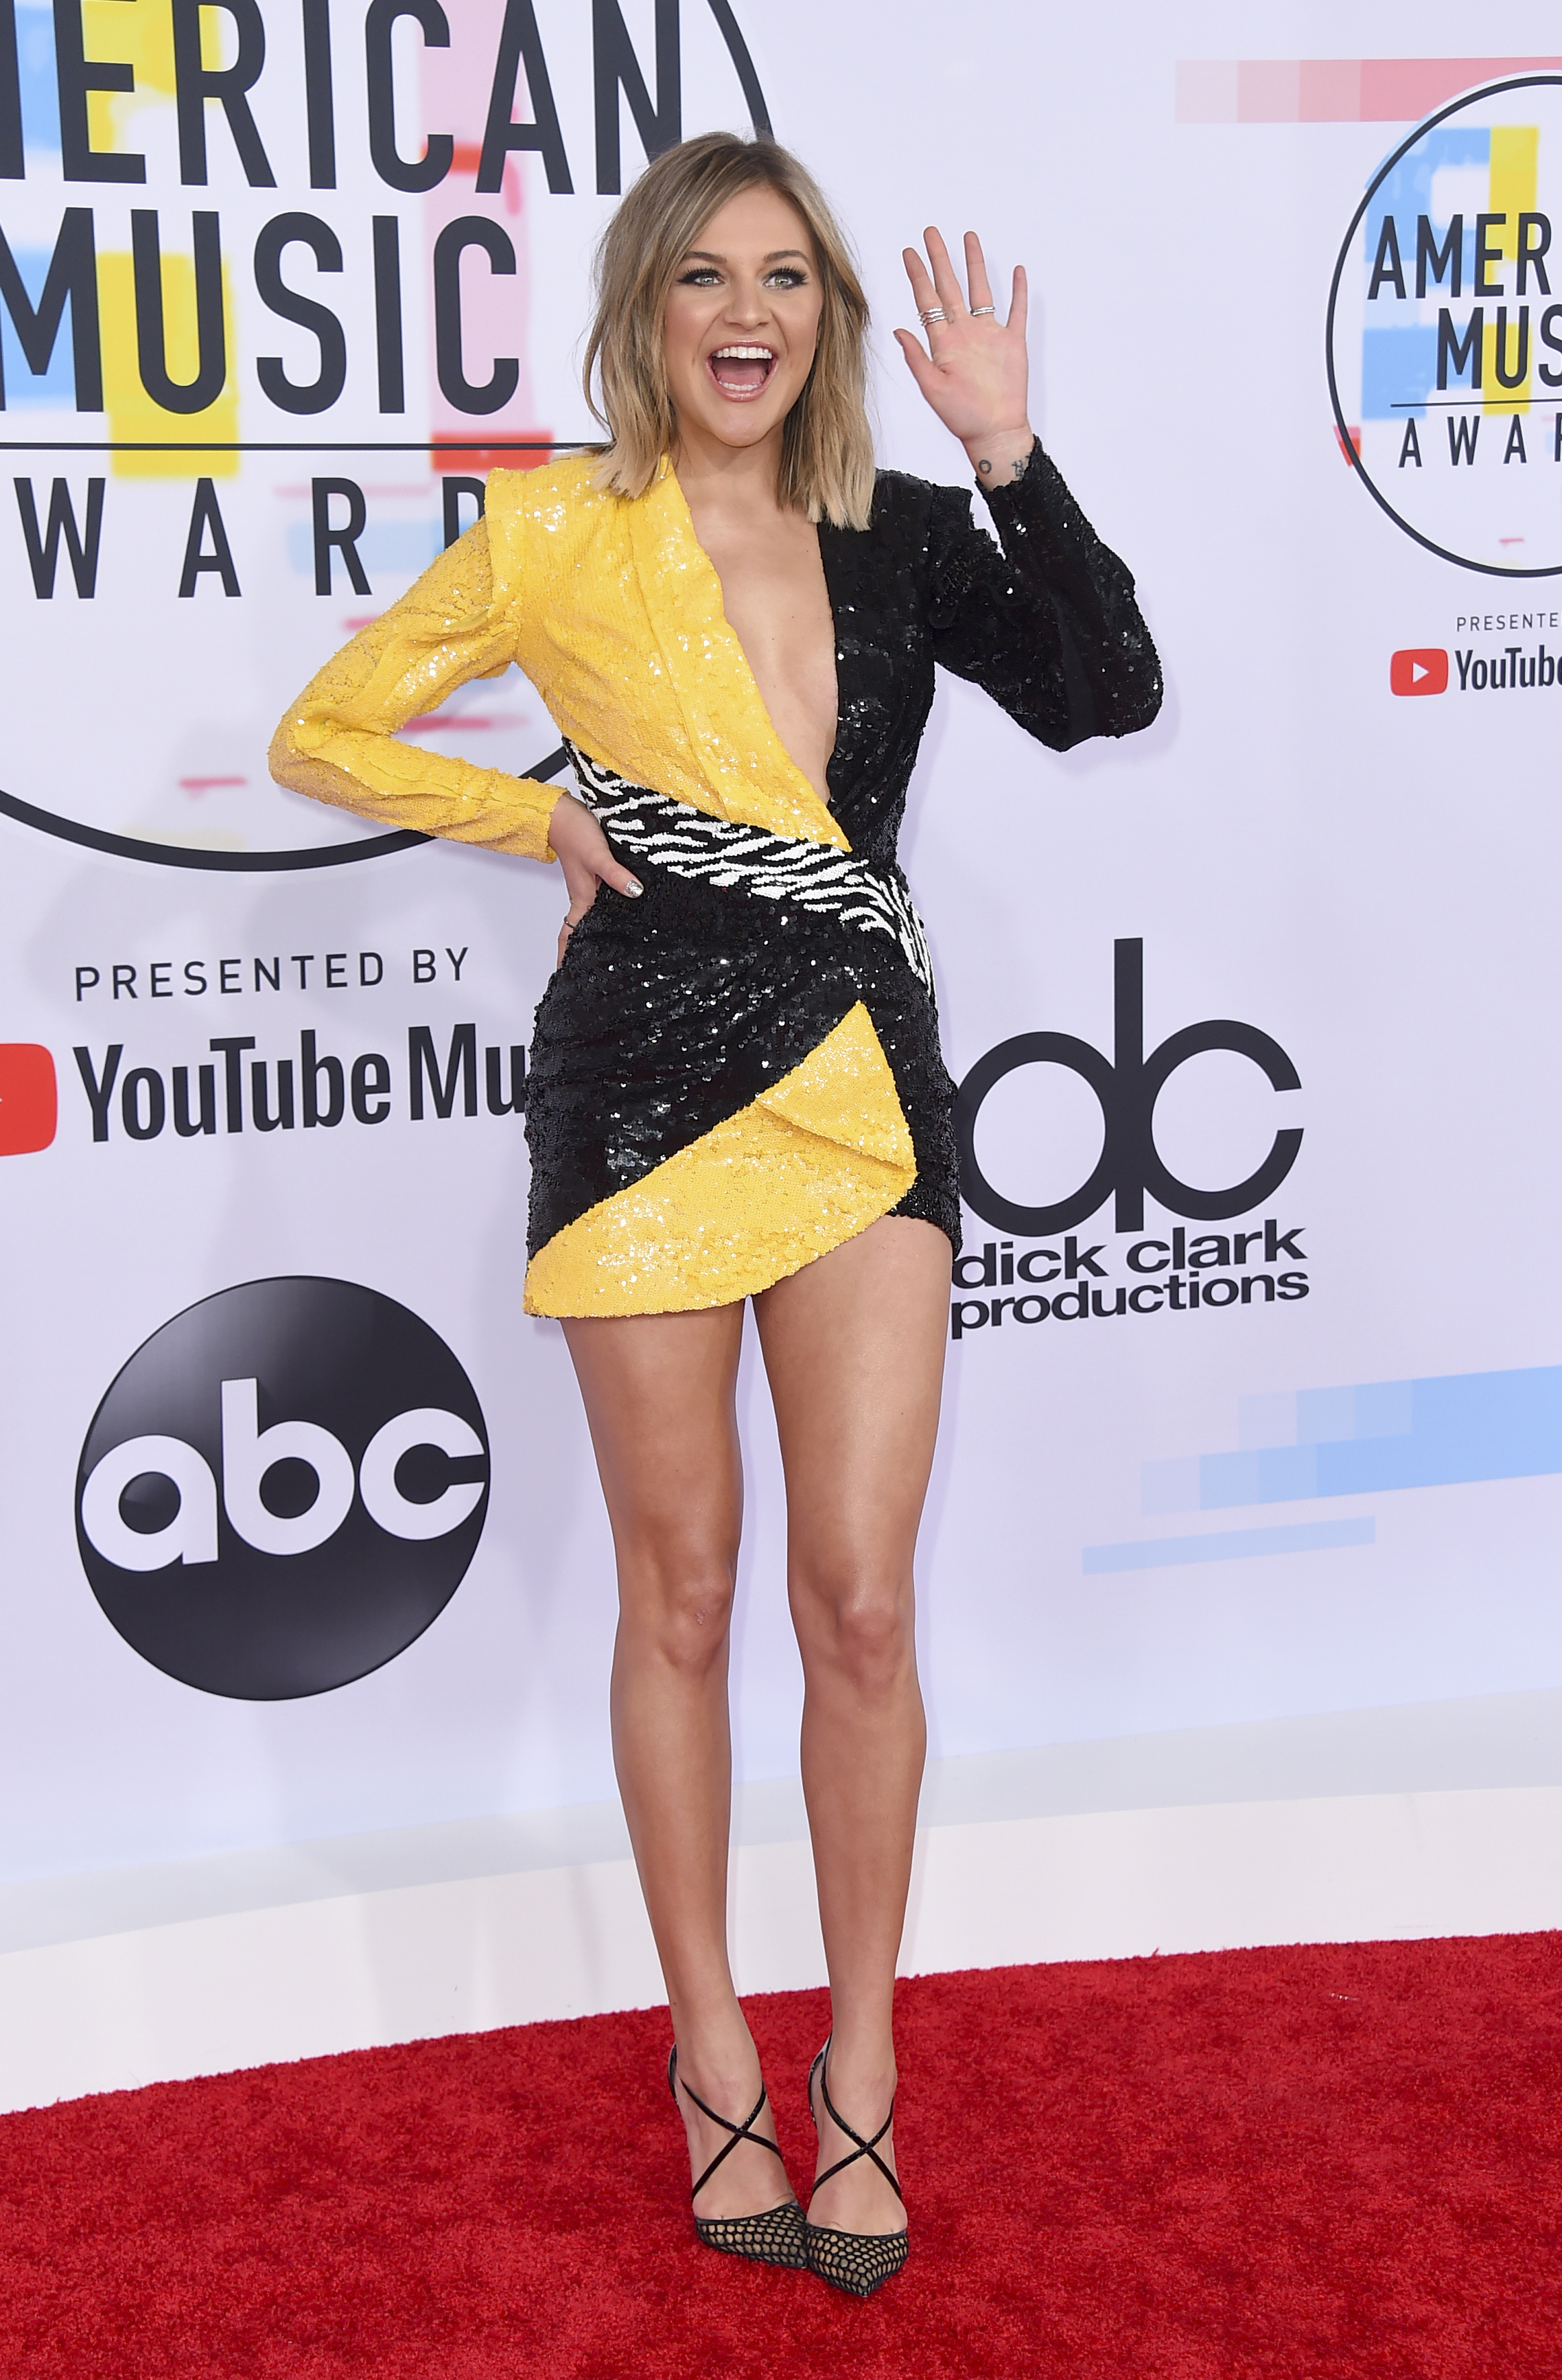 "<div class=""meta image-caption""><div class=""origin-logo origin-image none""><span>none</span></div><span class=""caption-text"">Kelsea Ballerini arrives at the American Music Awards on Tuesday, Oct. 9, 2018, at the Microsoft Theater in Los Angeles. (Jordan Strauss/Invision/AP)</span></div>"